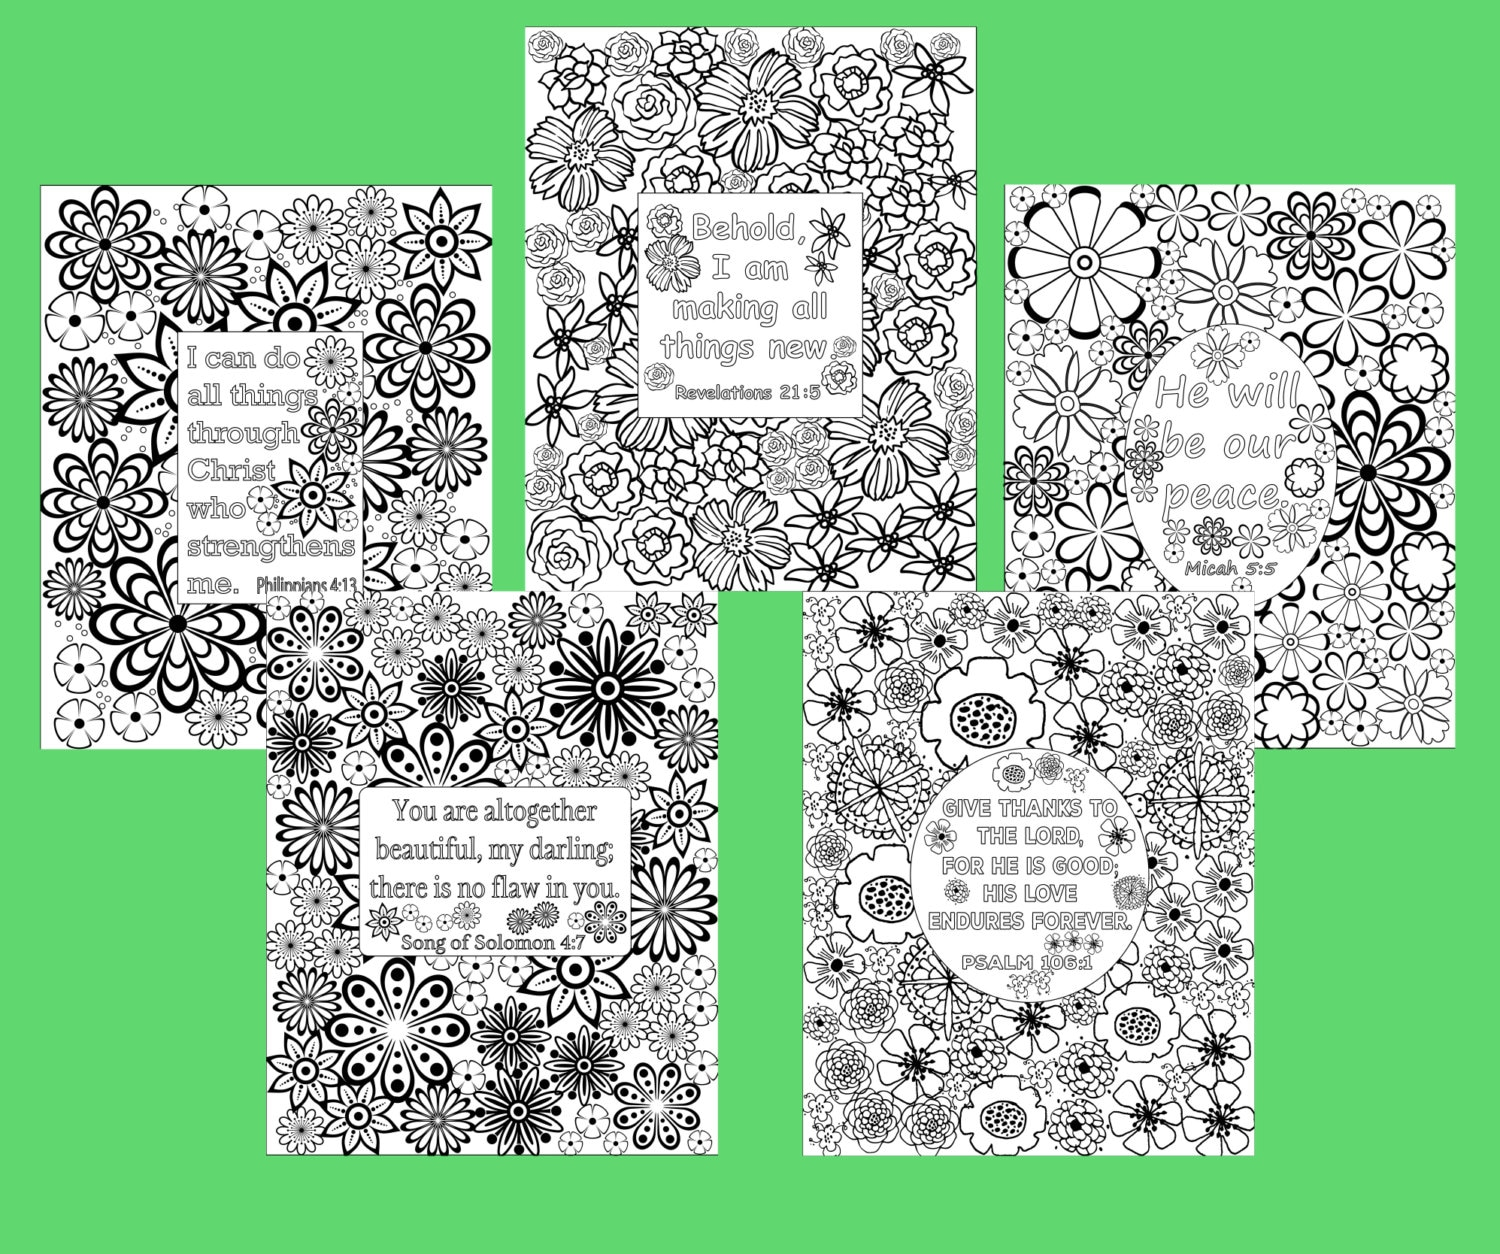 Flower coloring pages Bible verse coloring sheets. Set of 5